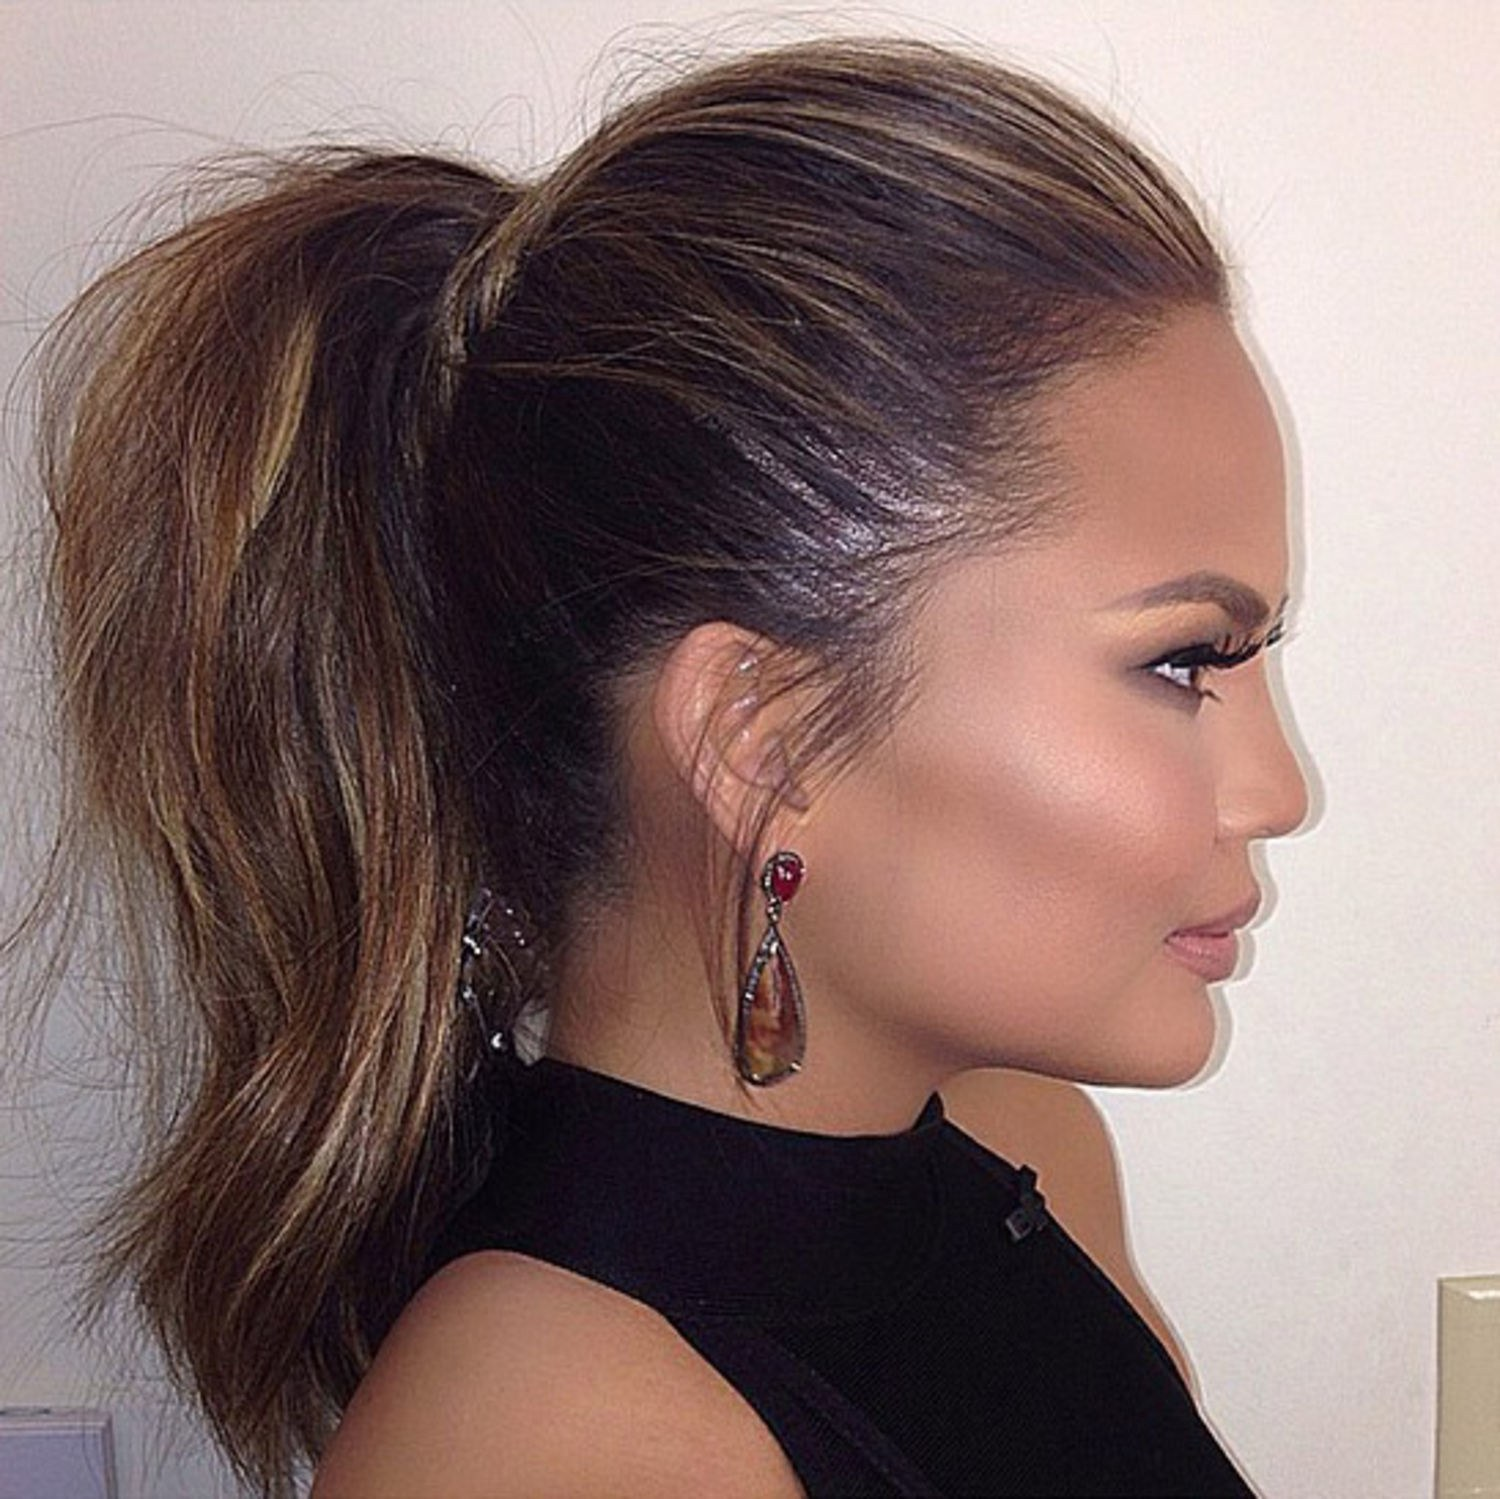 beauty-2015-06-chrissy-teigen-ponytail-jen-atkin-main